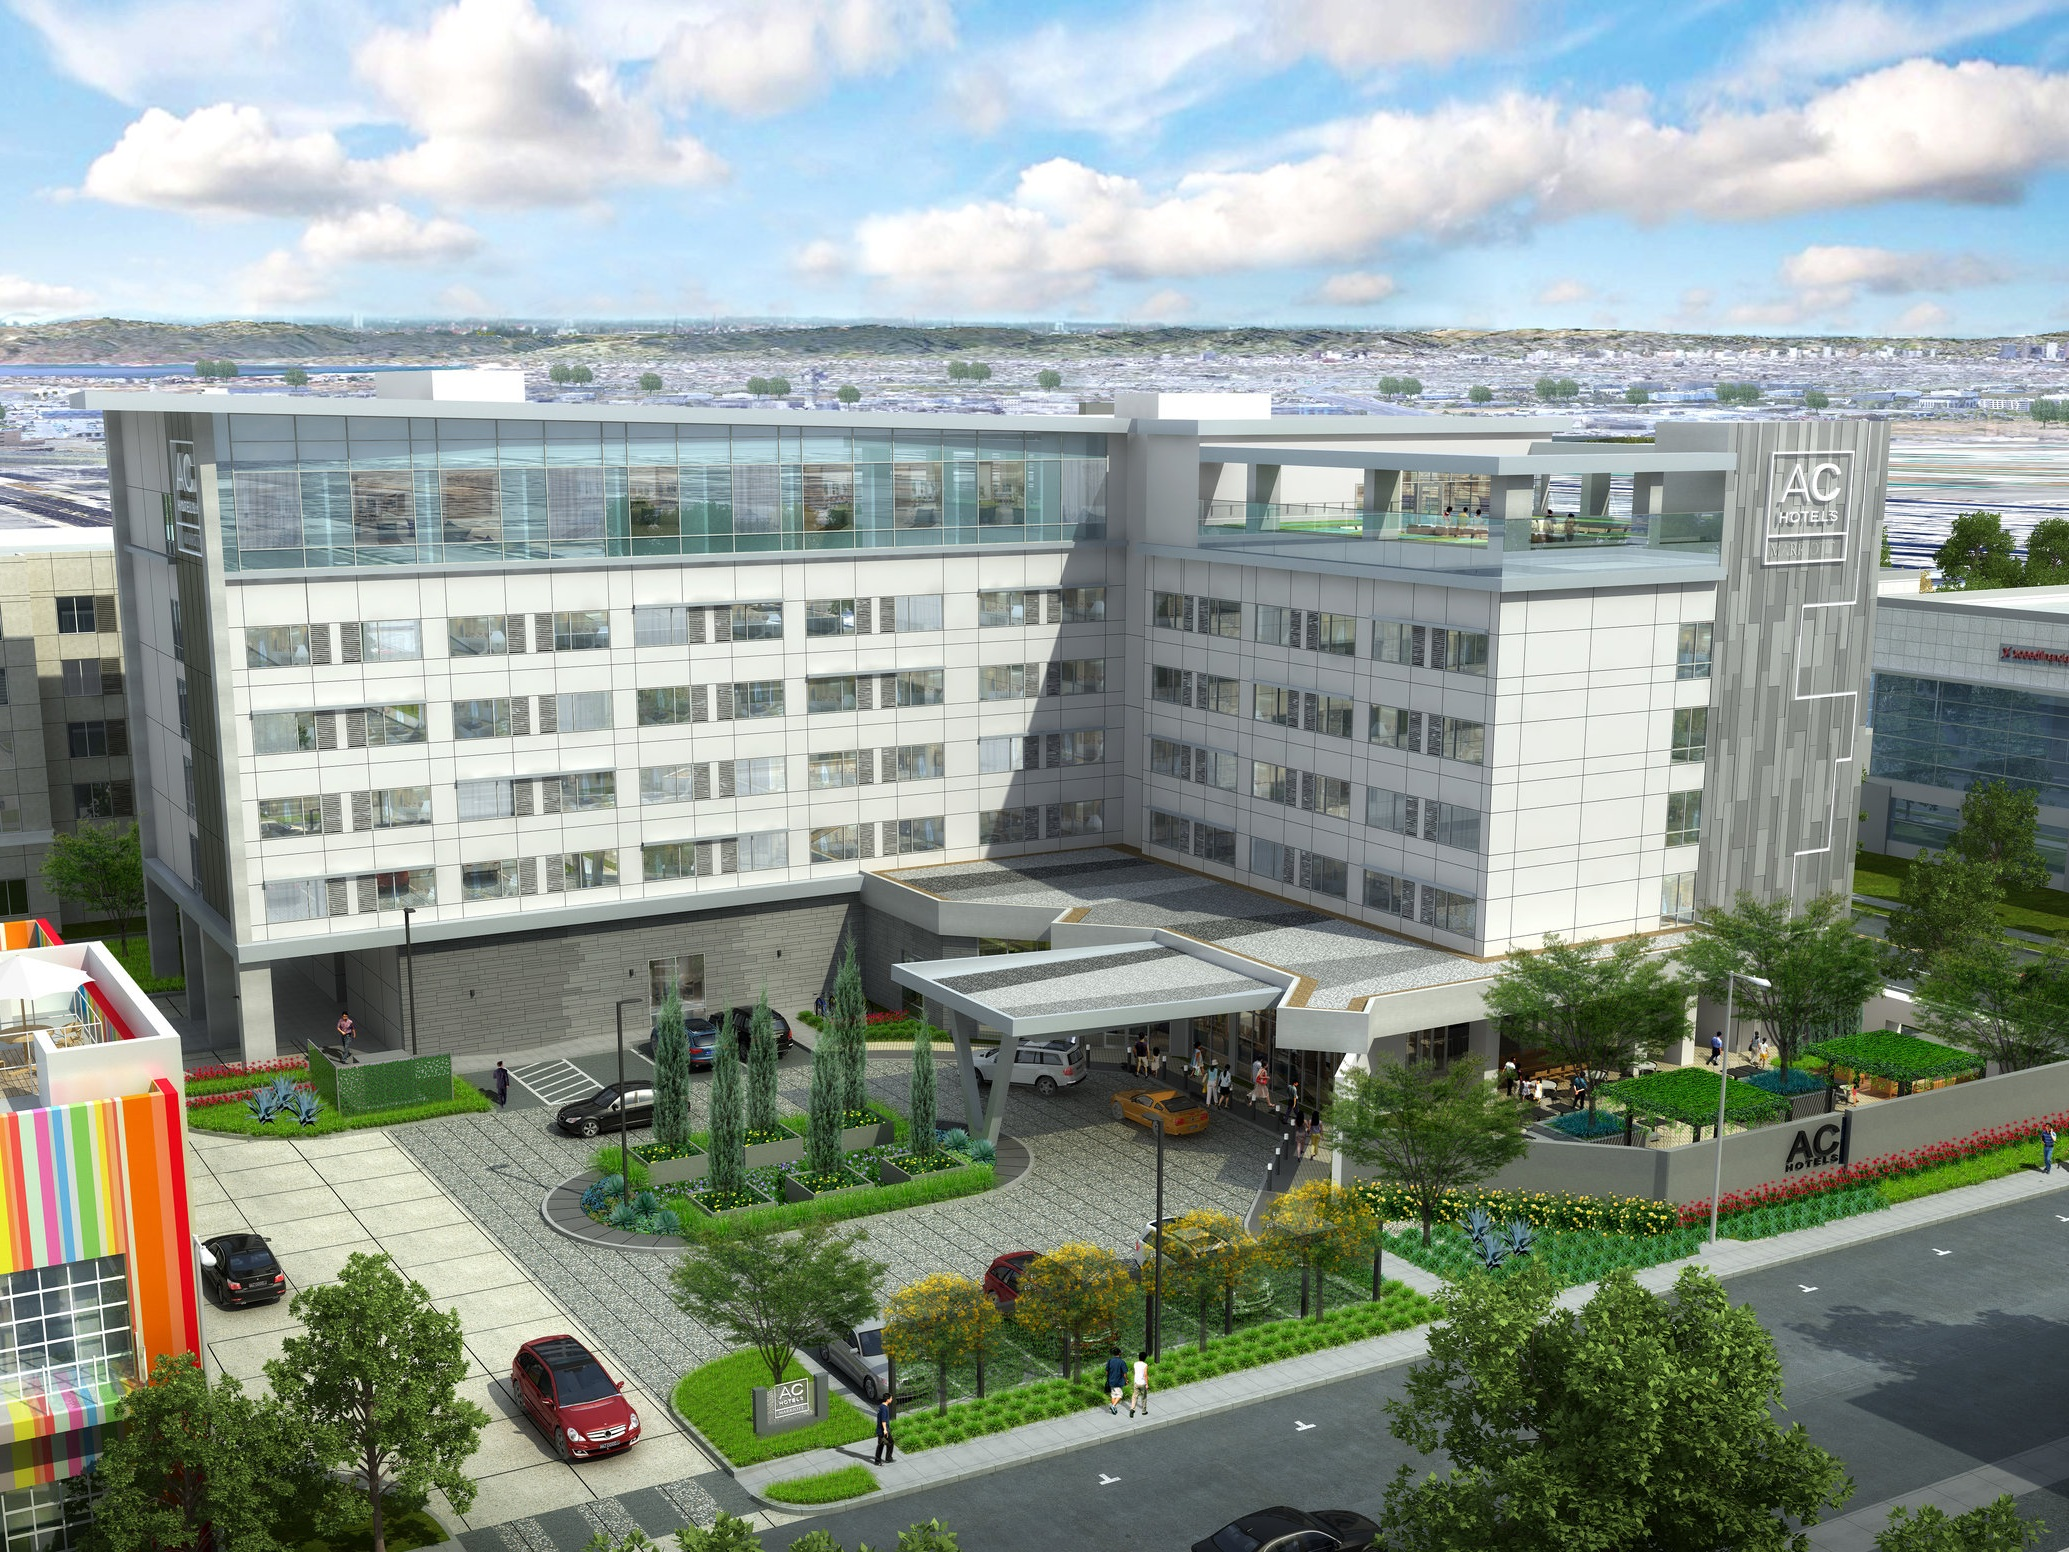 Commercial - For the last 15 years, we have collaborated with other firms to create Campus El Segundo, a 46-acre workplace campus featuring two hotels and a collection of more than 50 individual property owners.